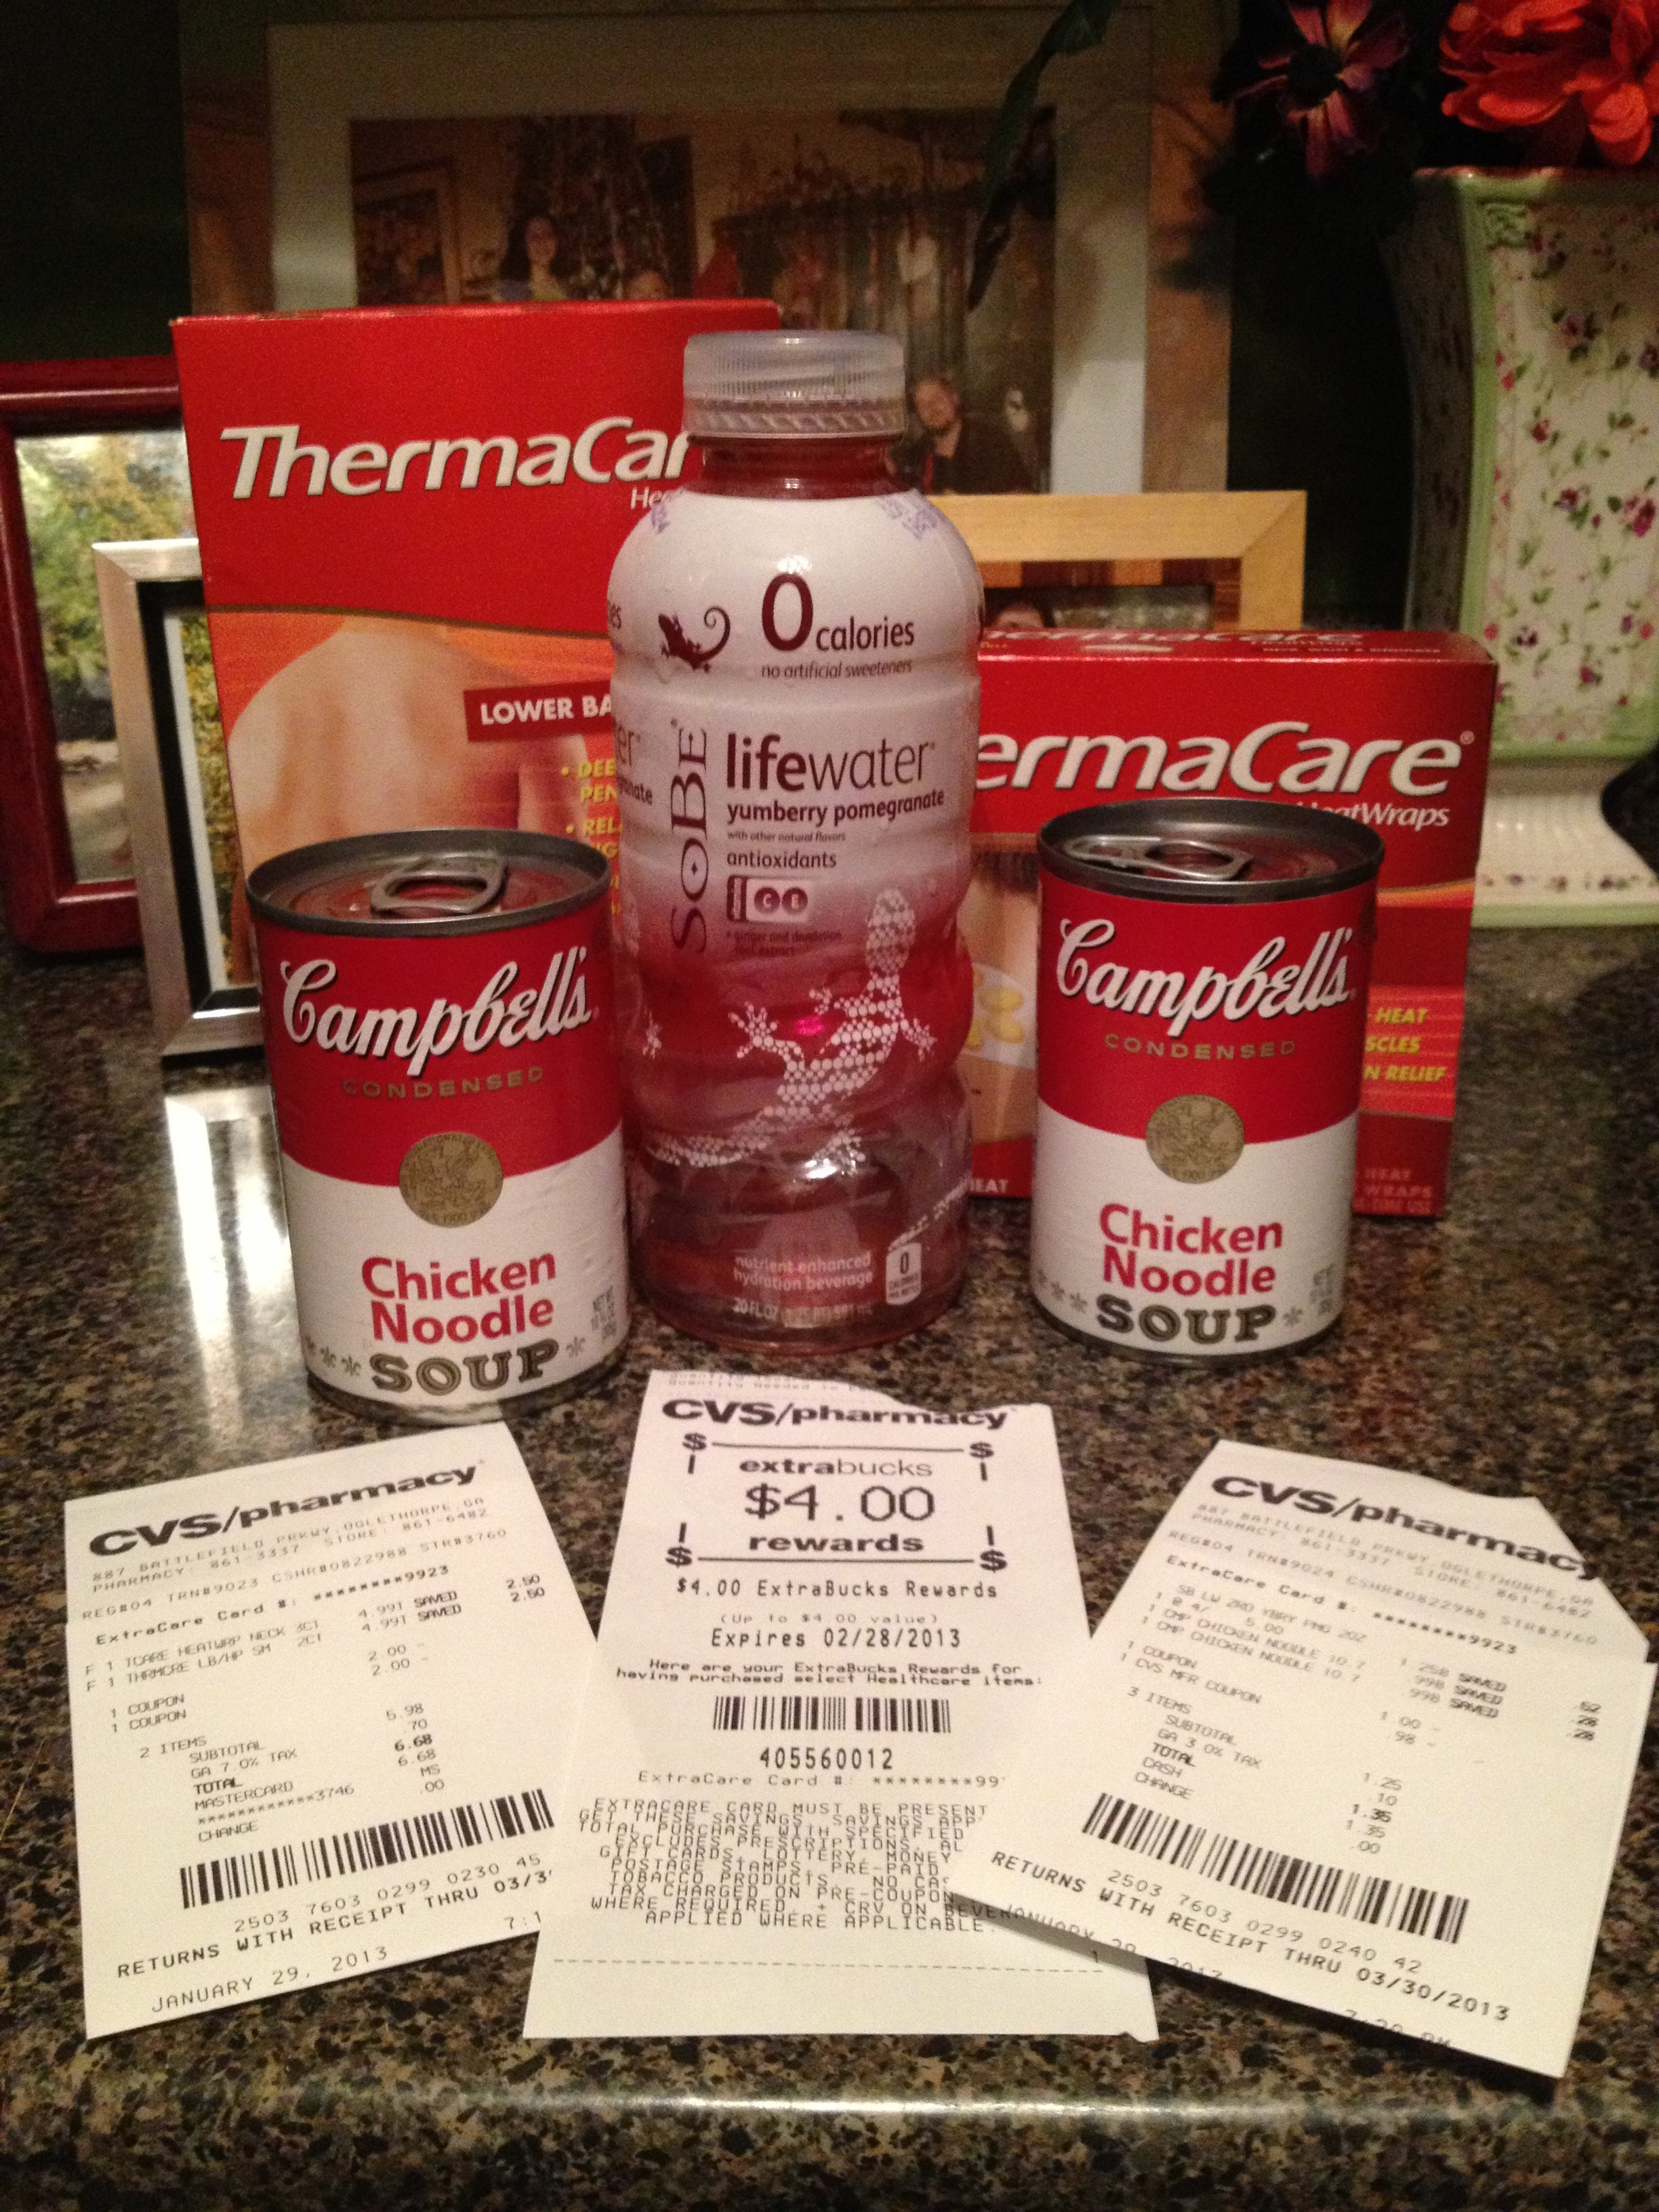 CVS Shopping Trip 1/29/13